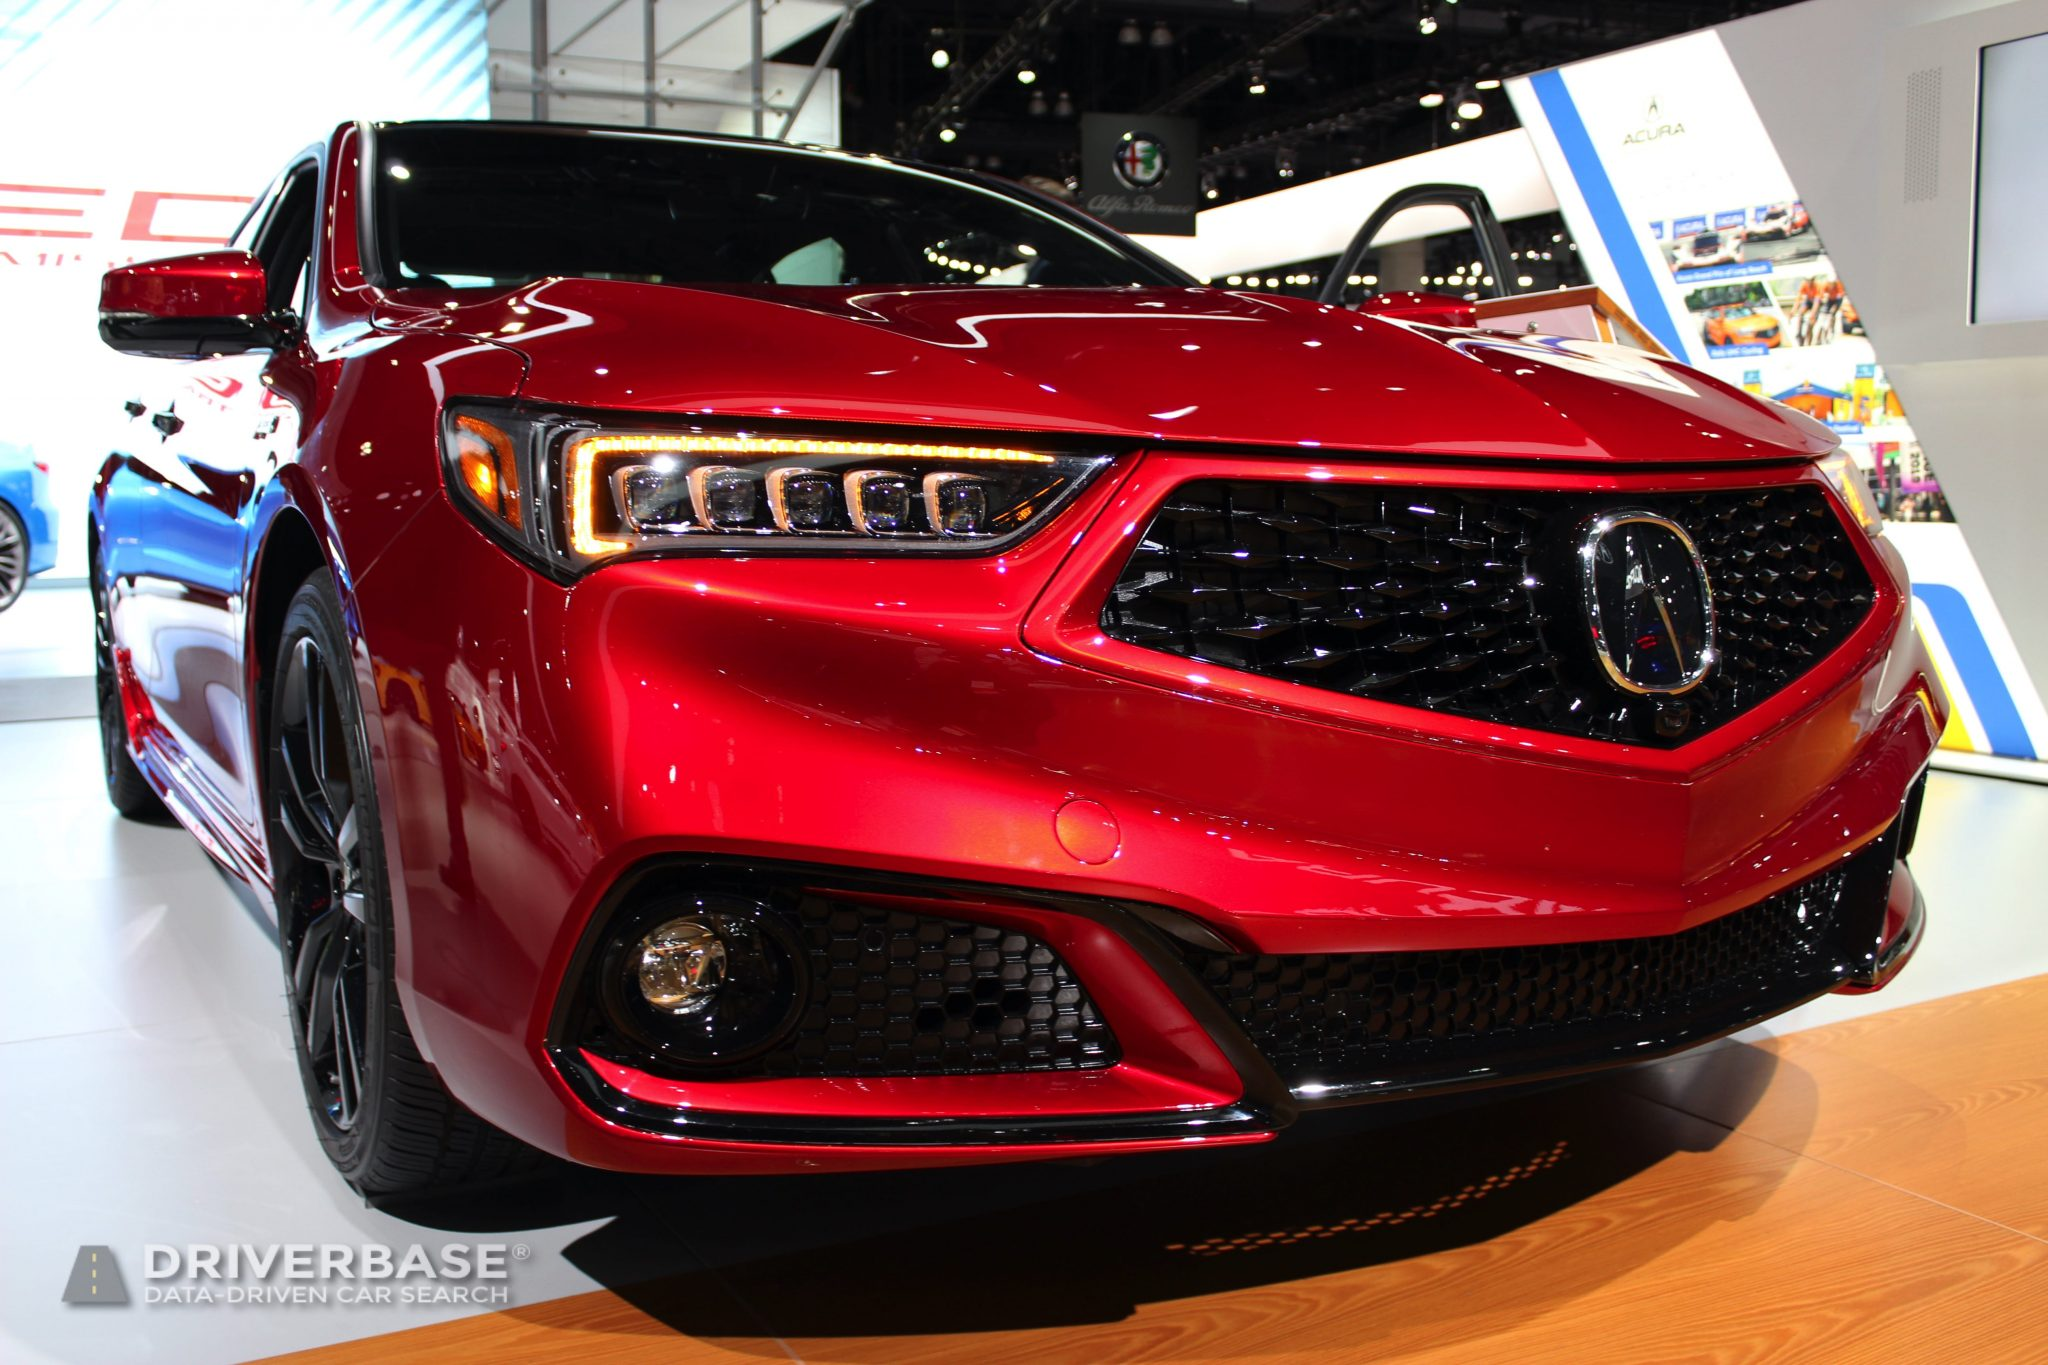 2020 Acura TLX at the 2019 Los Angeles Auto Show